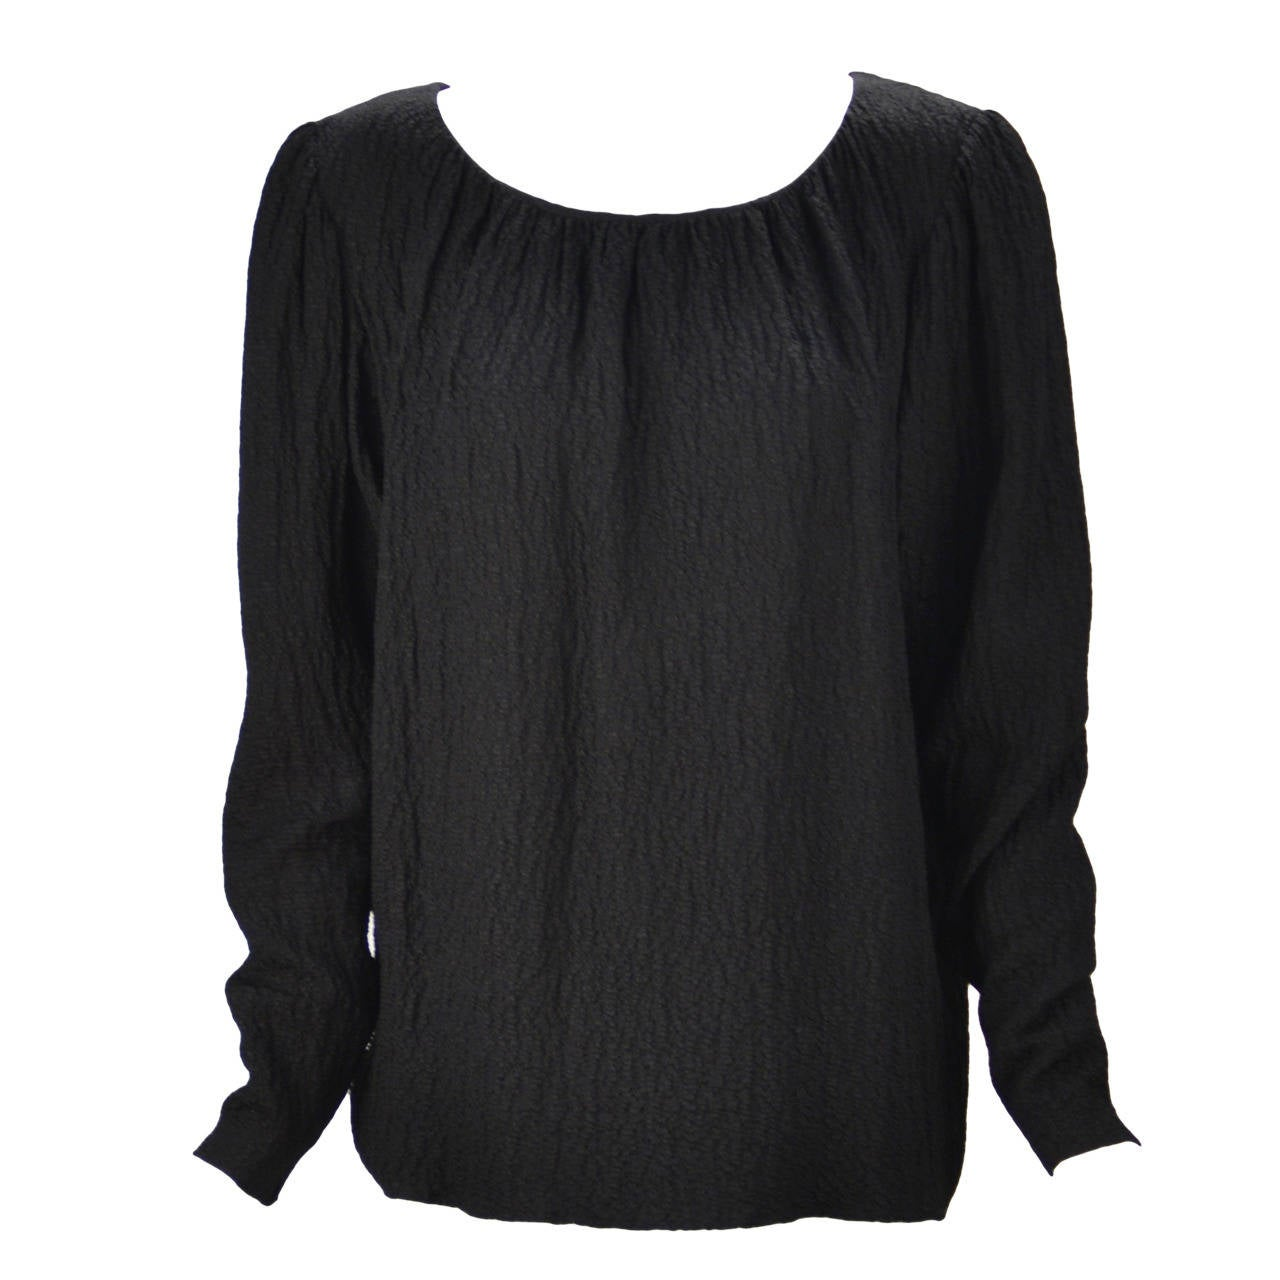 1970s Yves Saint Laurent Black Blouse 1